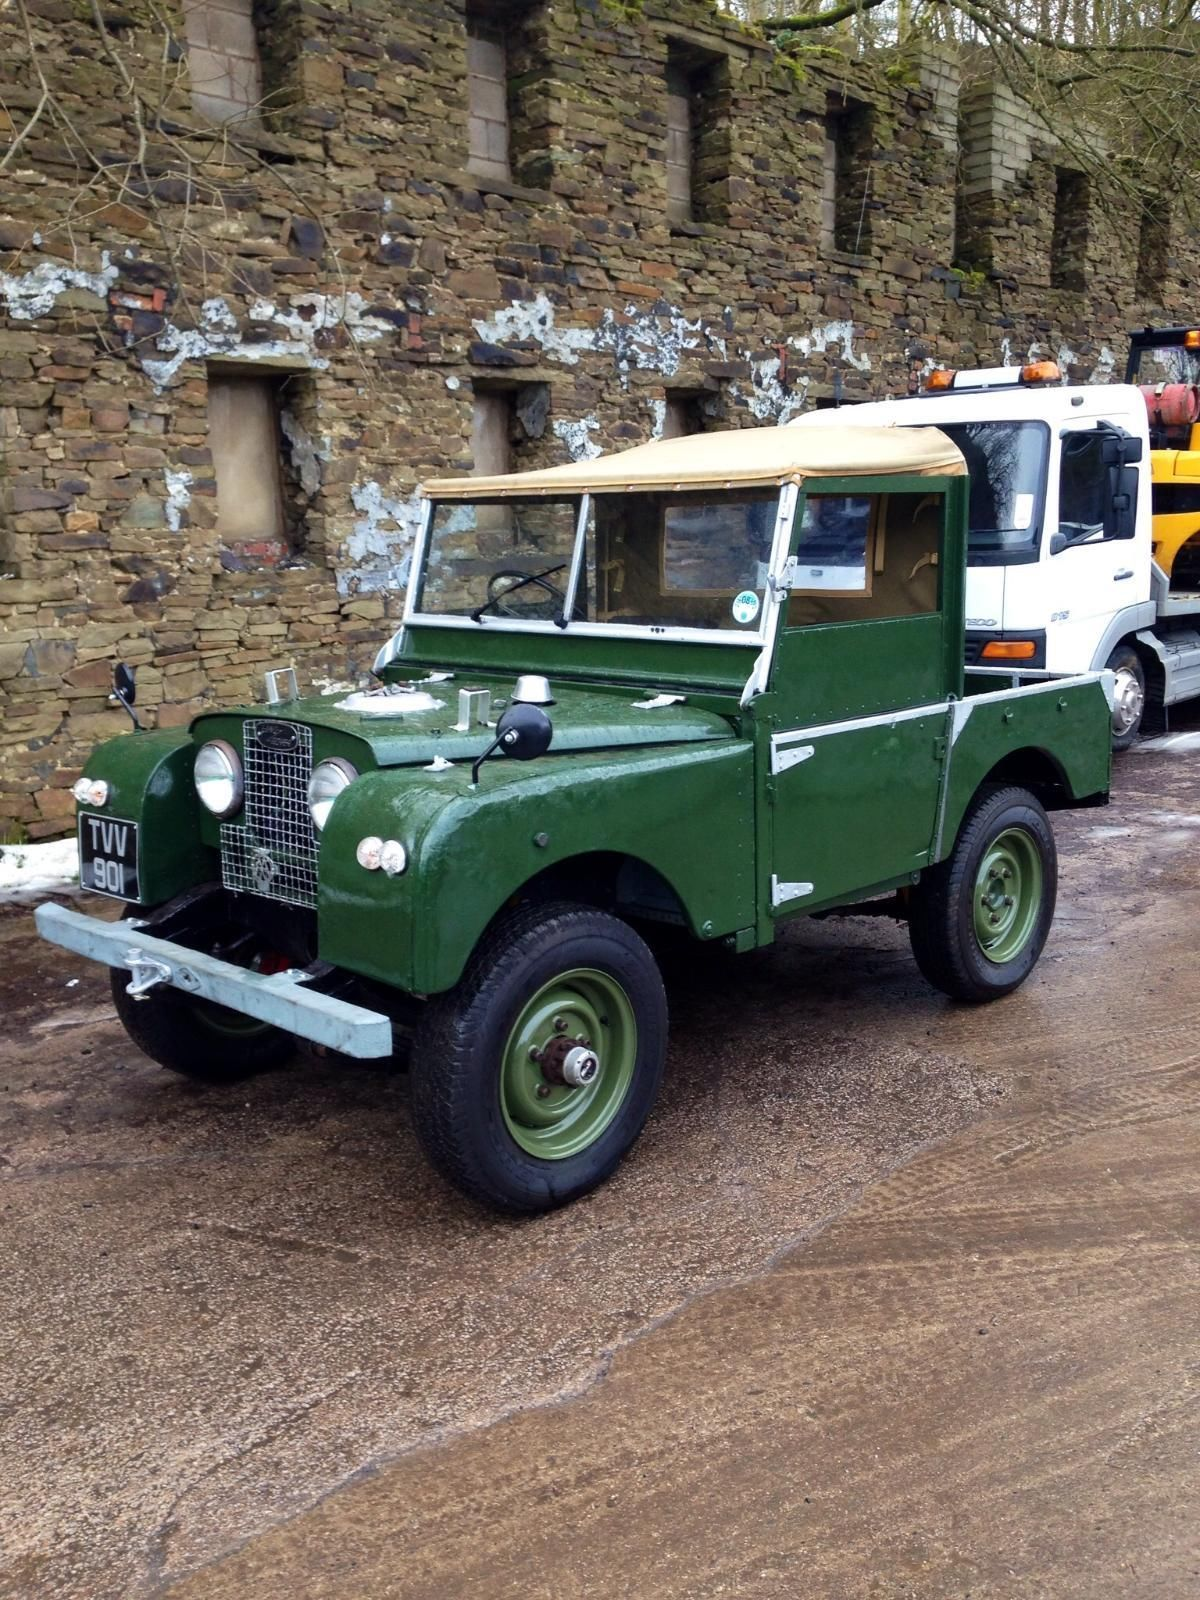 the more assumed get stolen rides now for land will i rover ebay retro defender zpssvpxndqn dead landrover thread but ones landy just